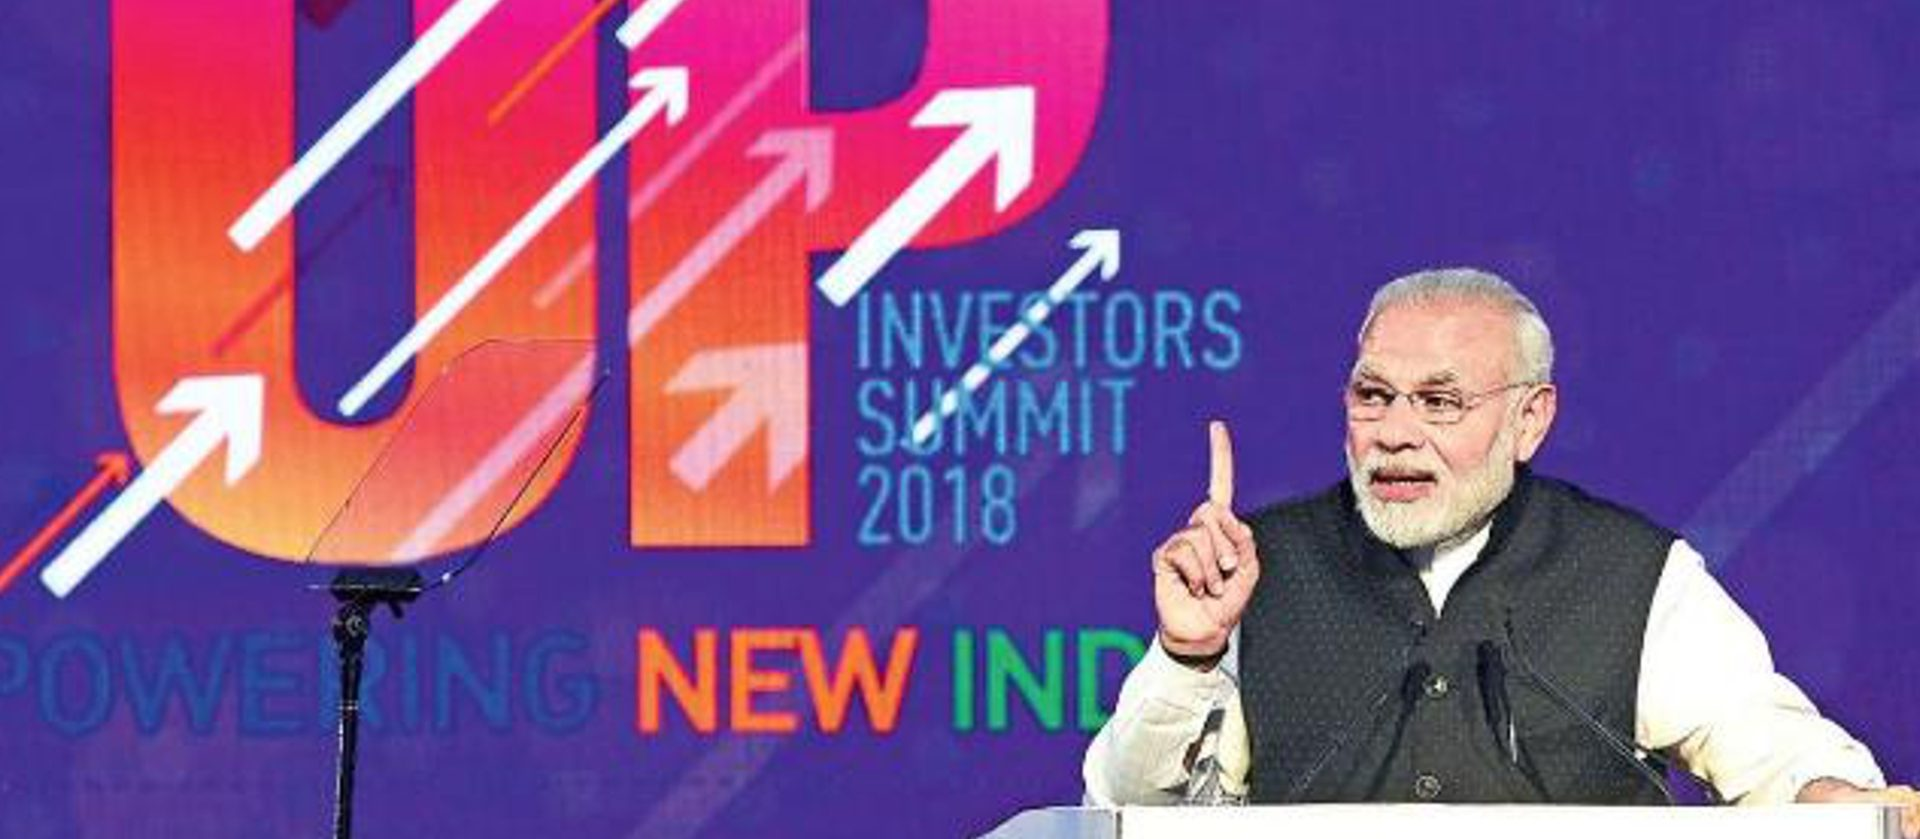 UP investor summit 2018 Narendra Modi | Kaivalya COmmunications